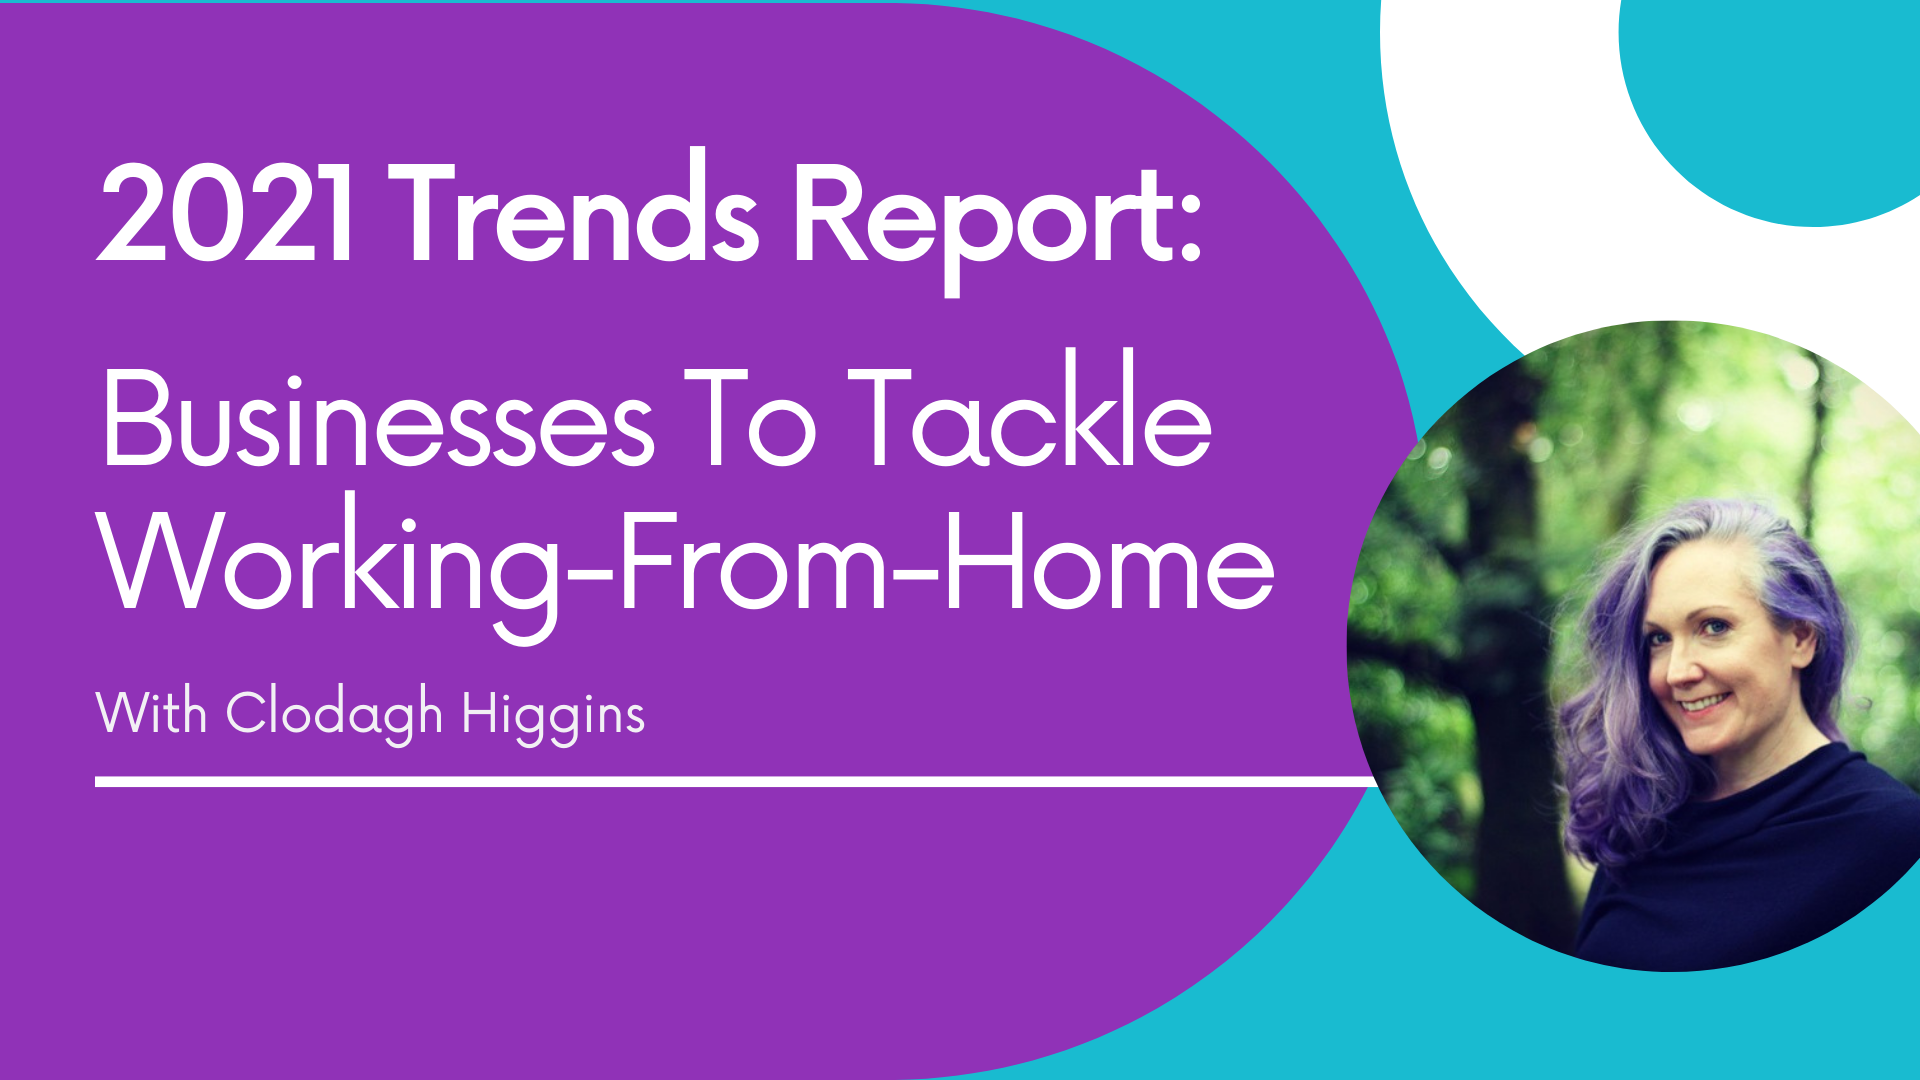 businesses-to-tackle-working-from-home